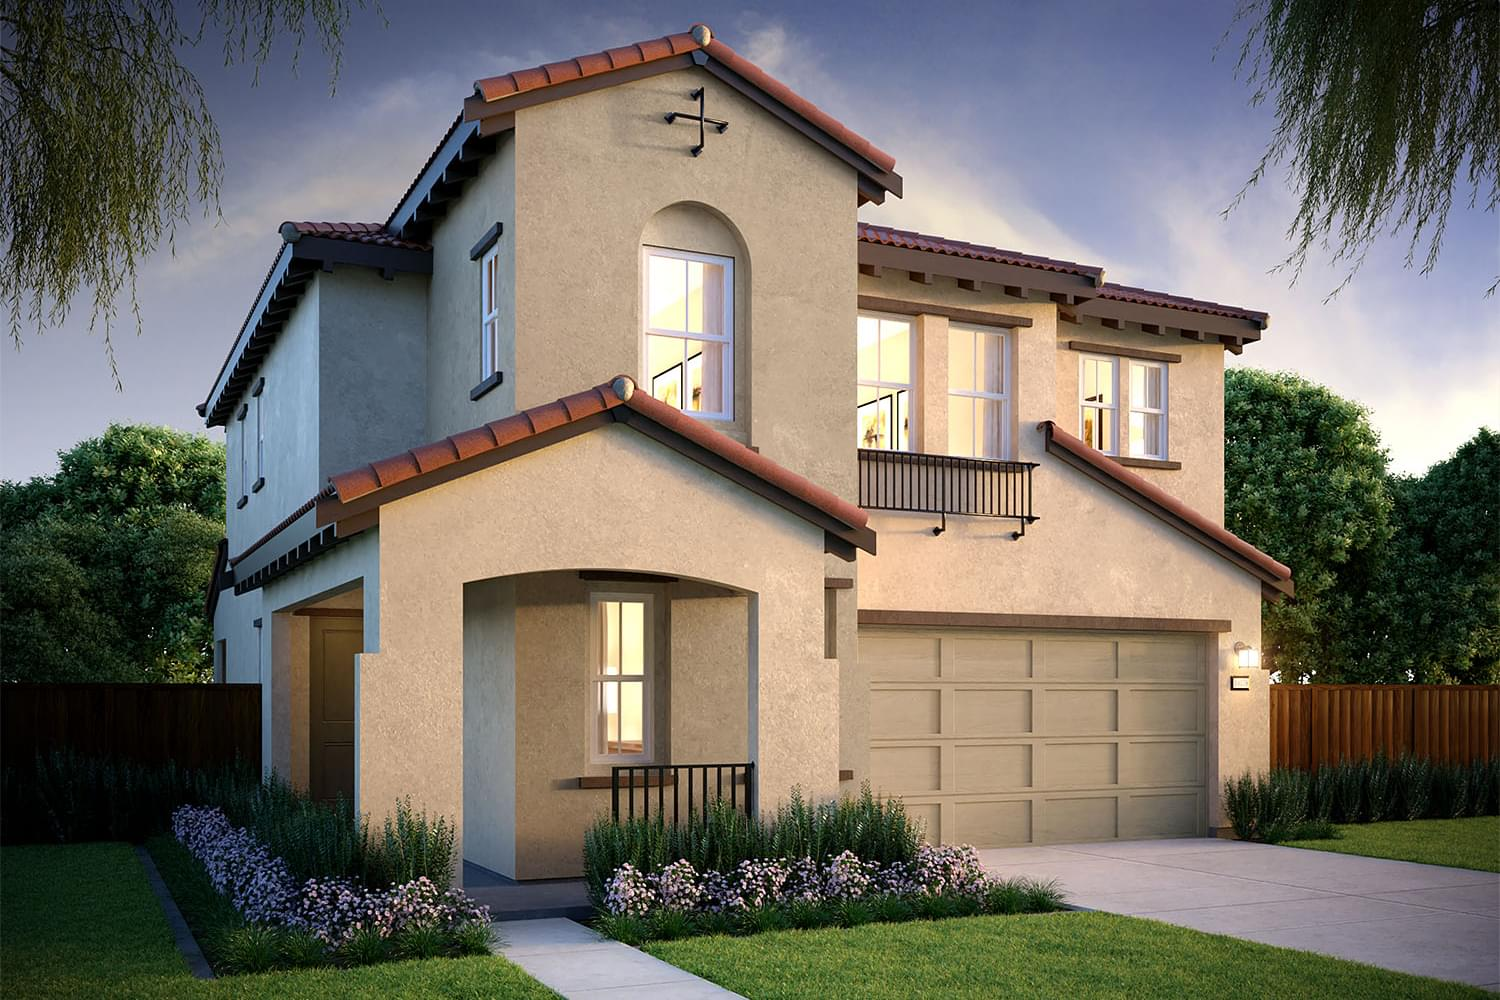 2772 Lily Court in , CA by DeNova Homes